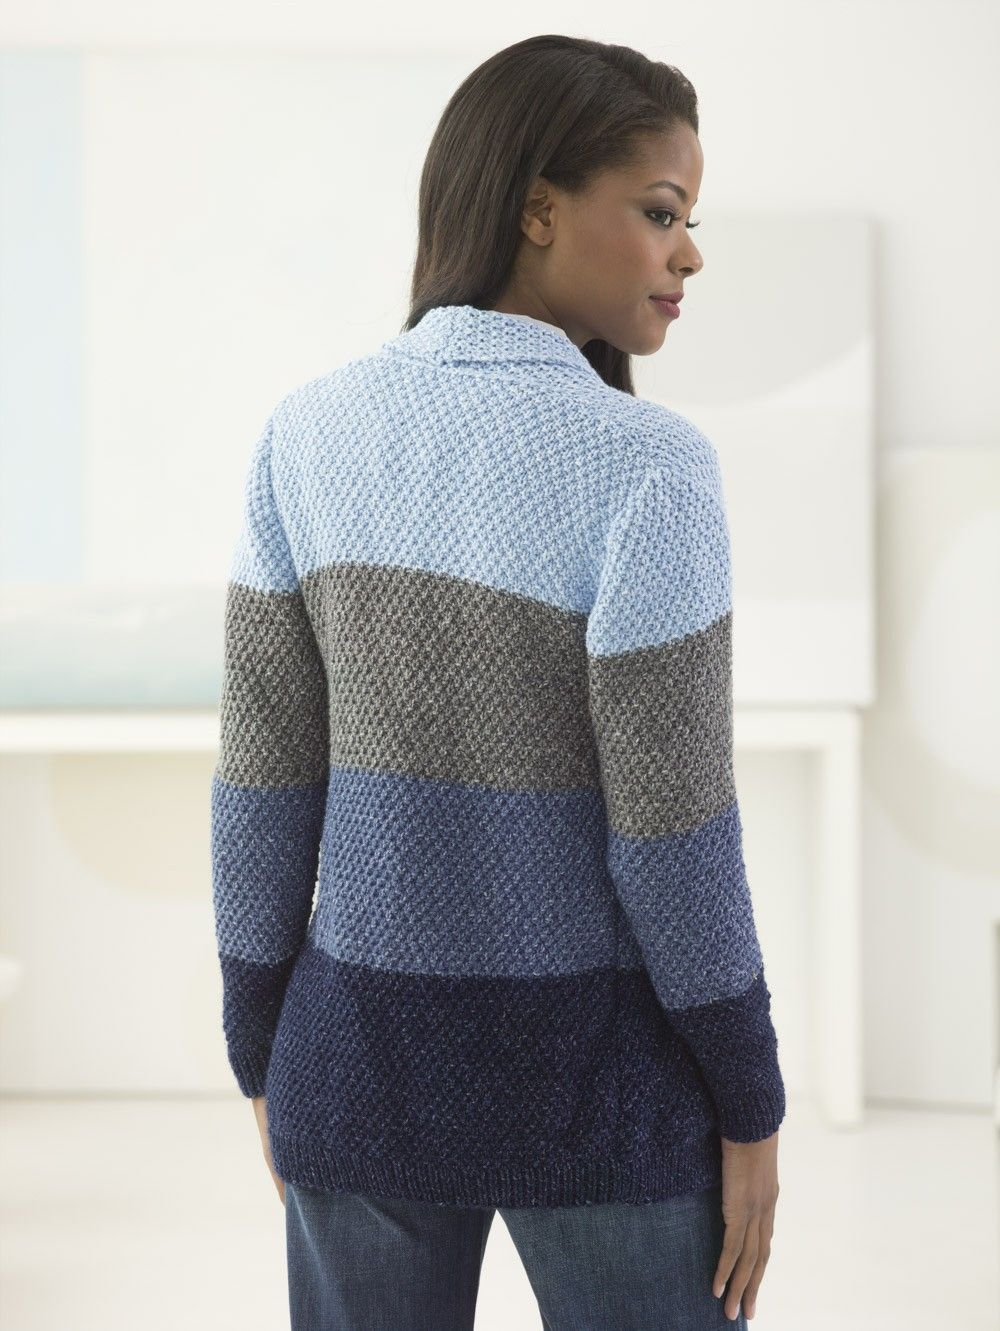 High Plains Cardigan Free Knitting Pattern | Pinterest